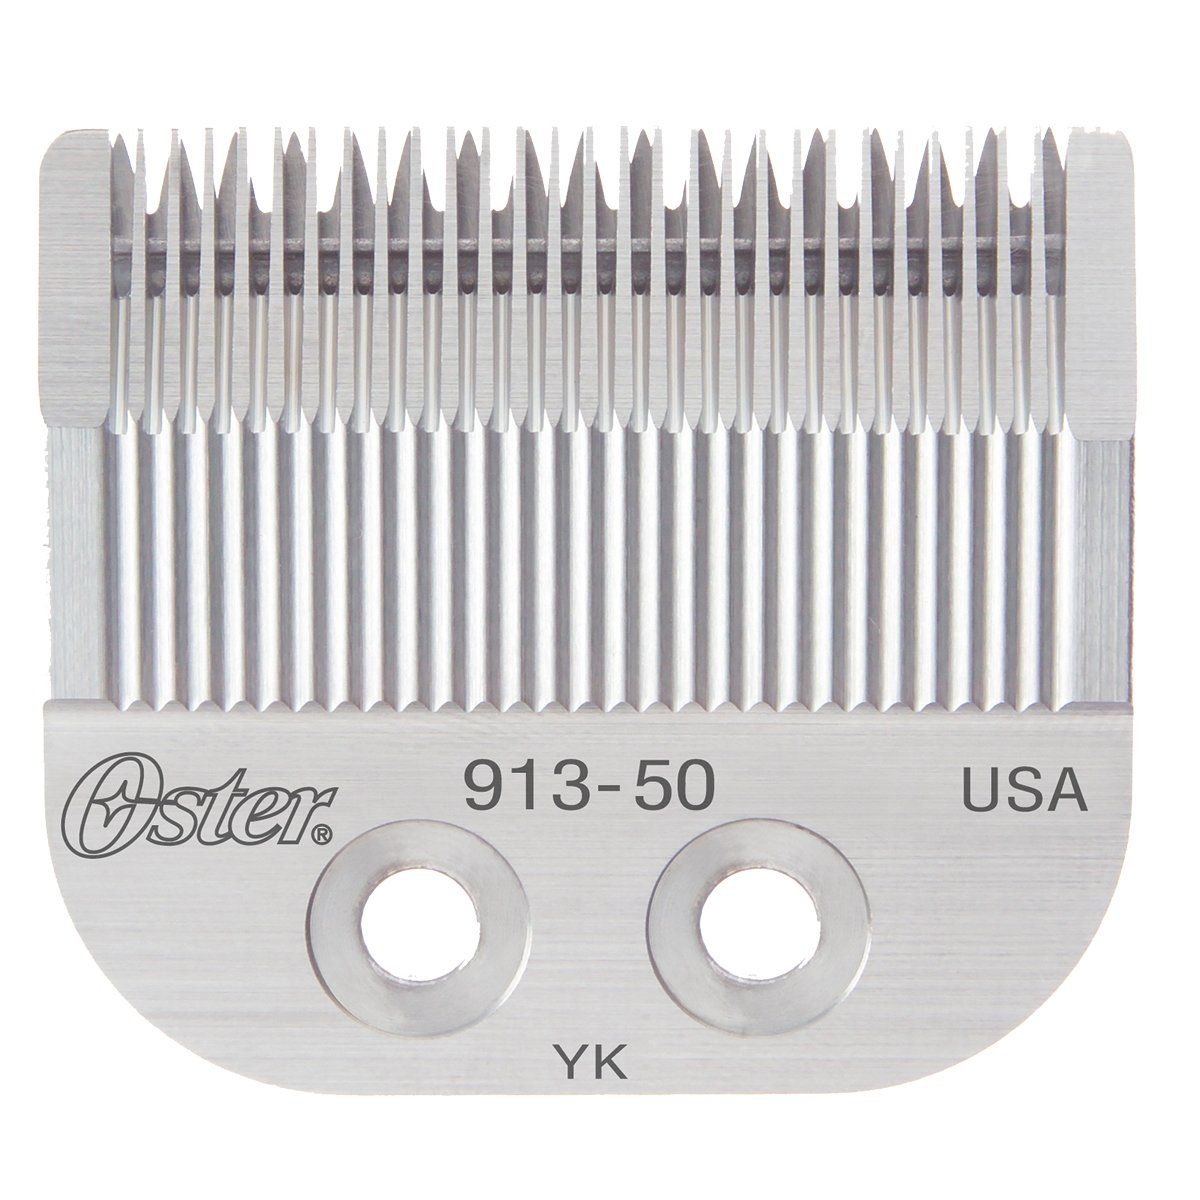 Oster 76913-536 Blade Set # 913-53 Fit Fast Feed 25-teeth, Silver, 1.58 Oz 076913-536-001